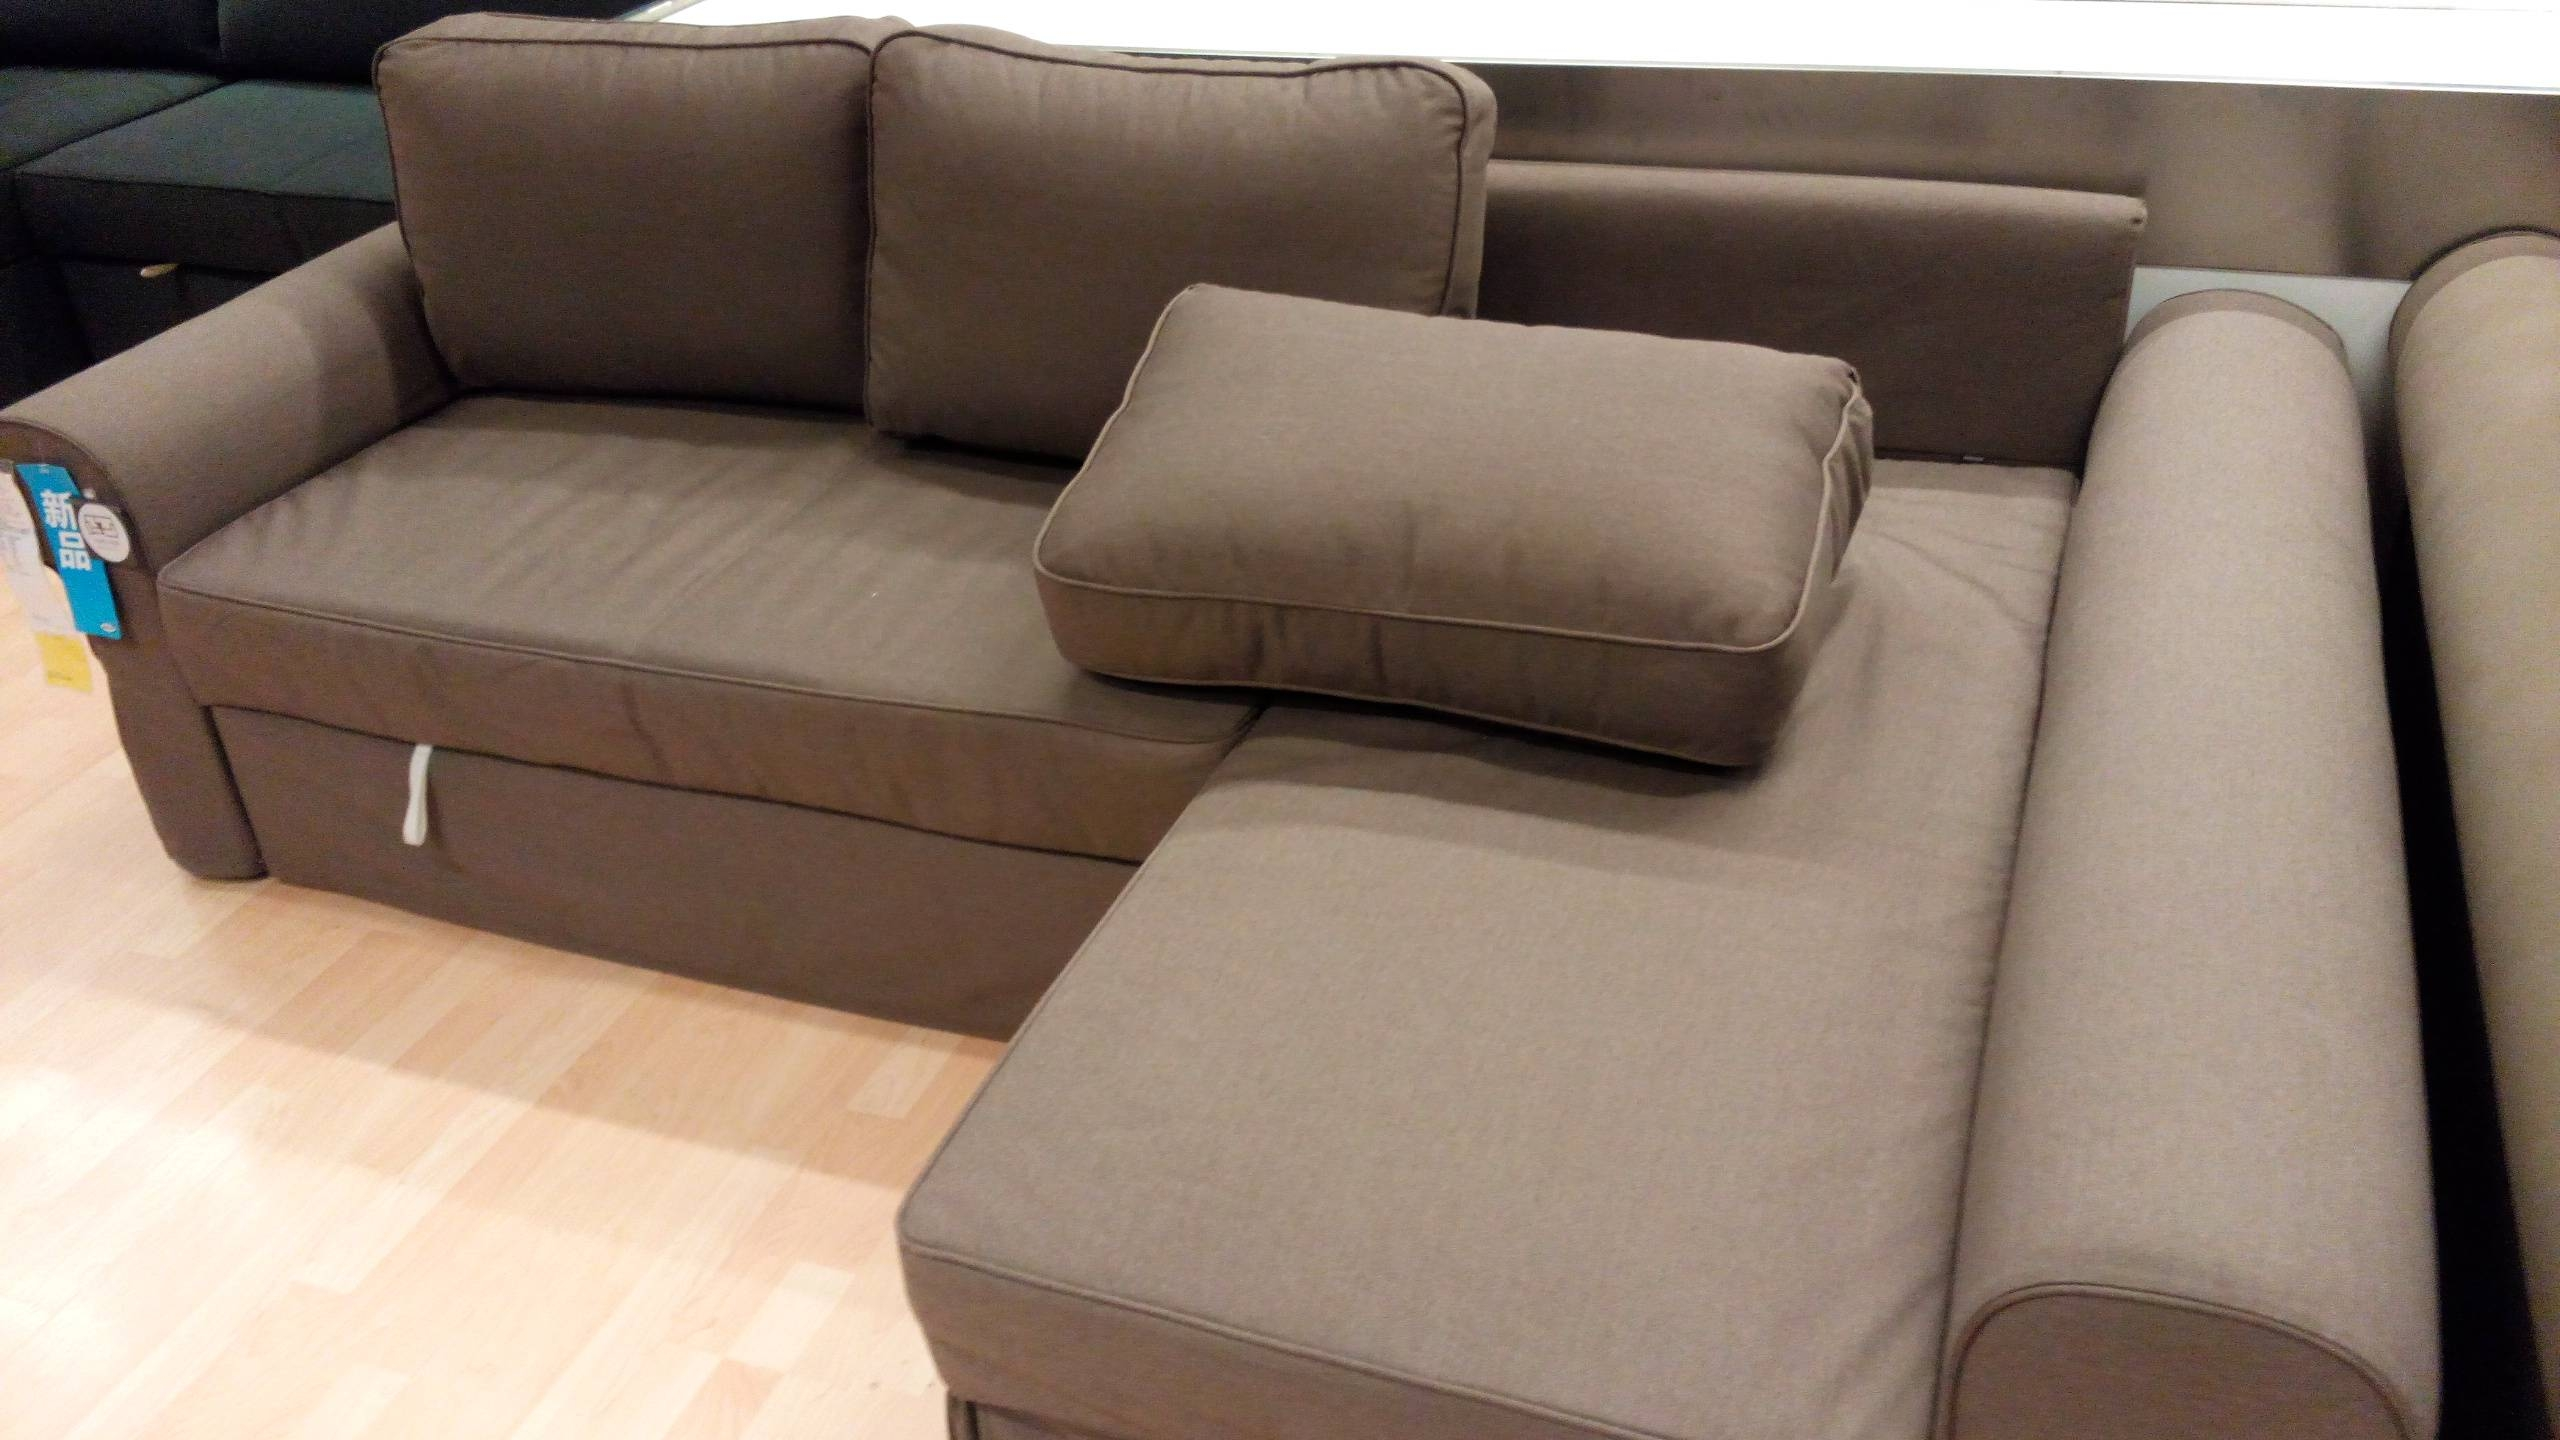 Ikea Vilasund And Backabro Review   Return Of The Sofa Bed Clones! For Sofa Beds With Chaise Lounge (Photo 3 of 15)